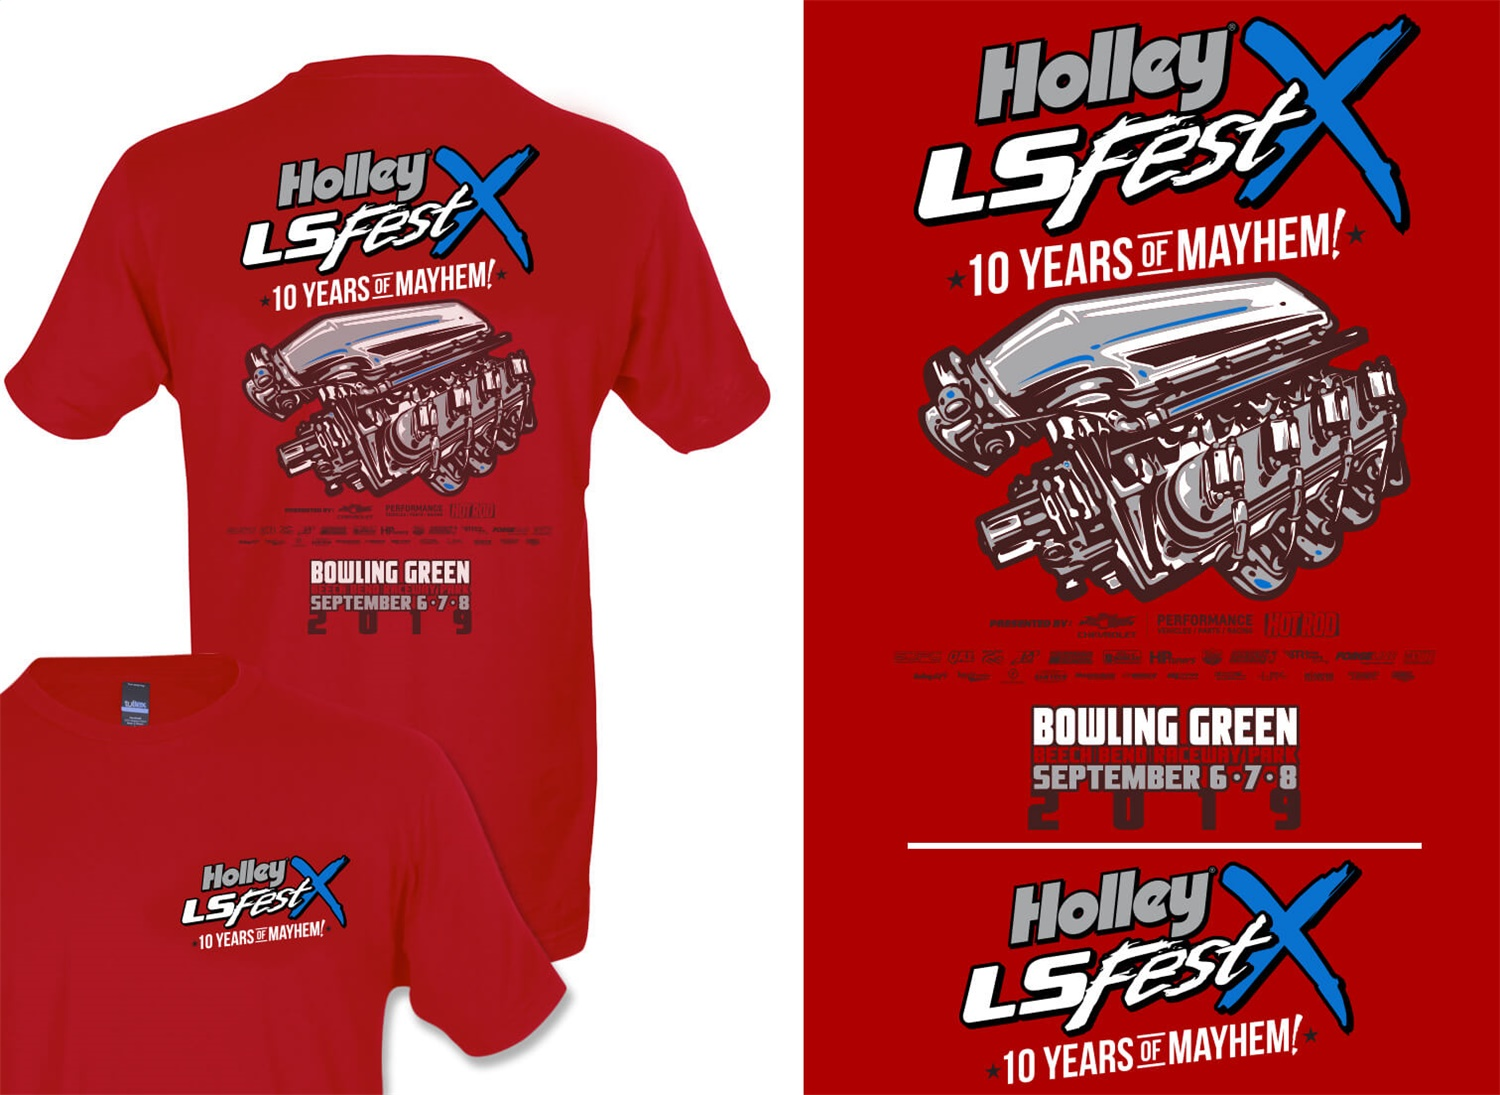 Holley Performance 10219-3XHOL 2019 Holley LS Fest Main Event Engine T-Shirt